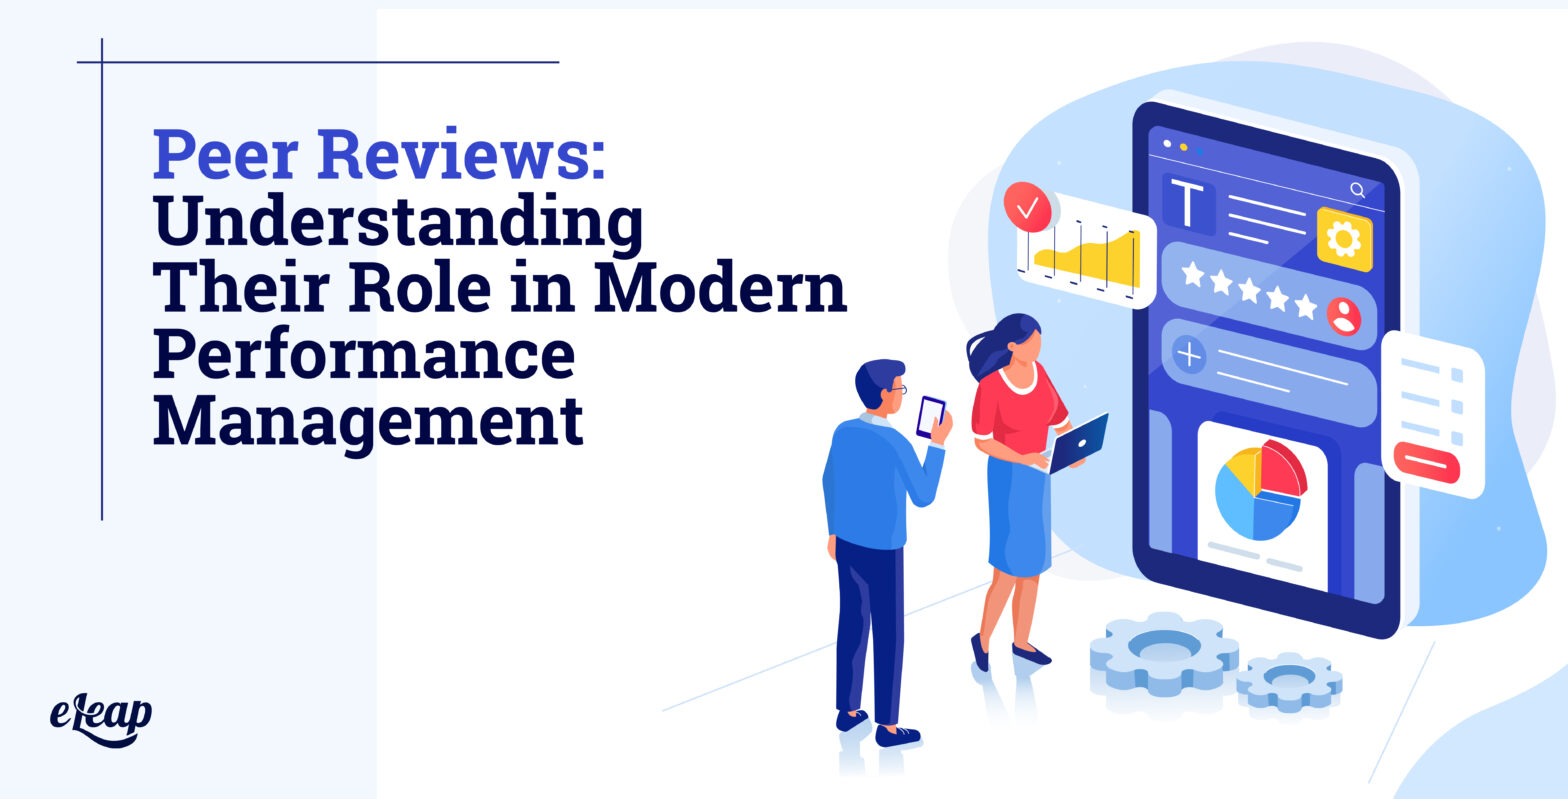 Peer Reviews: Understanding Their Role in Modern Performance Management